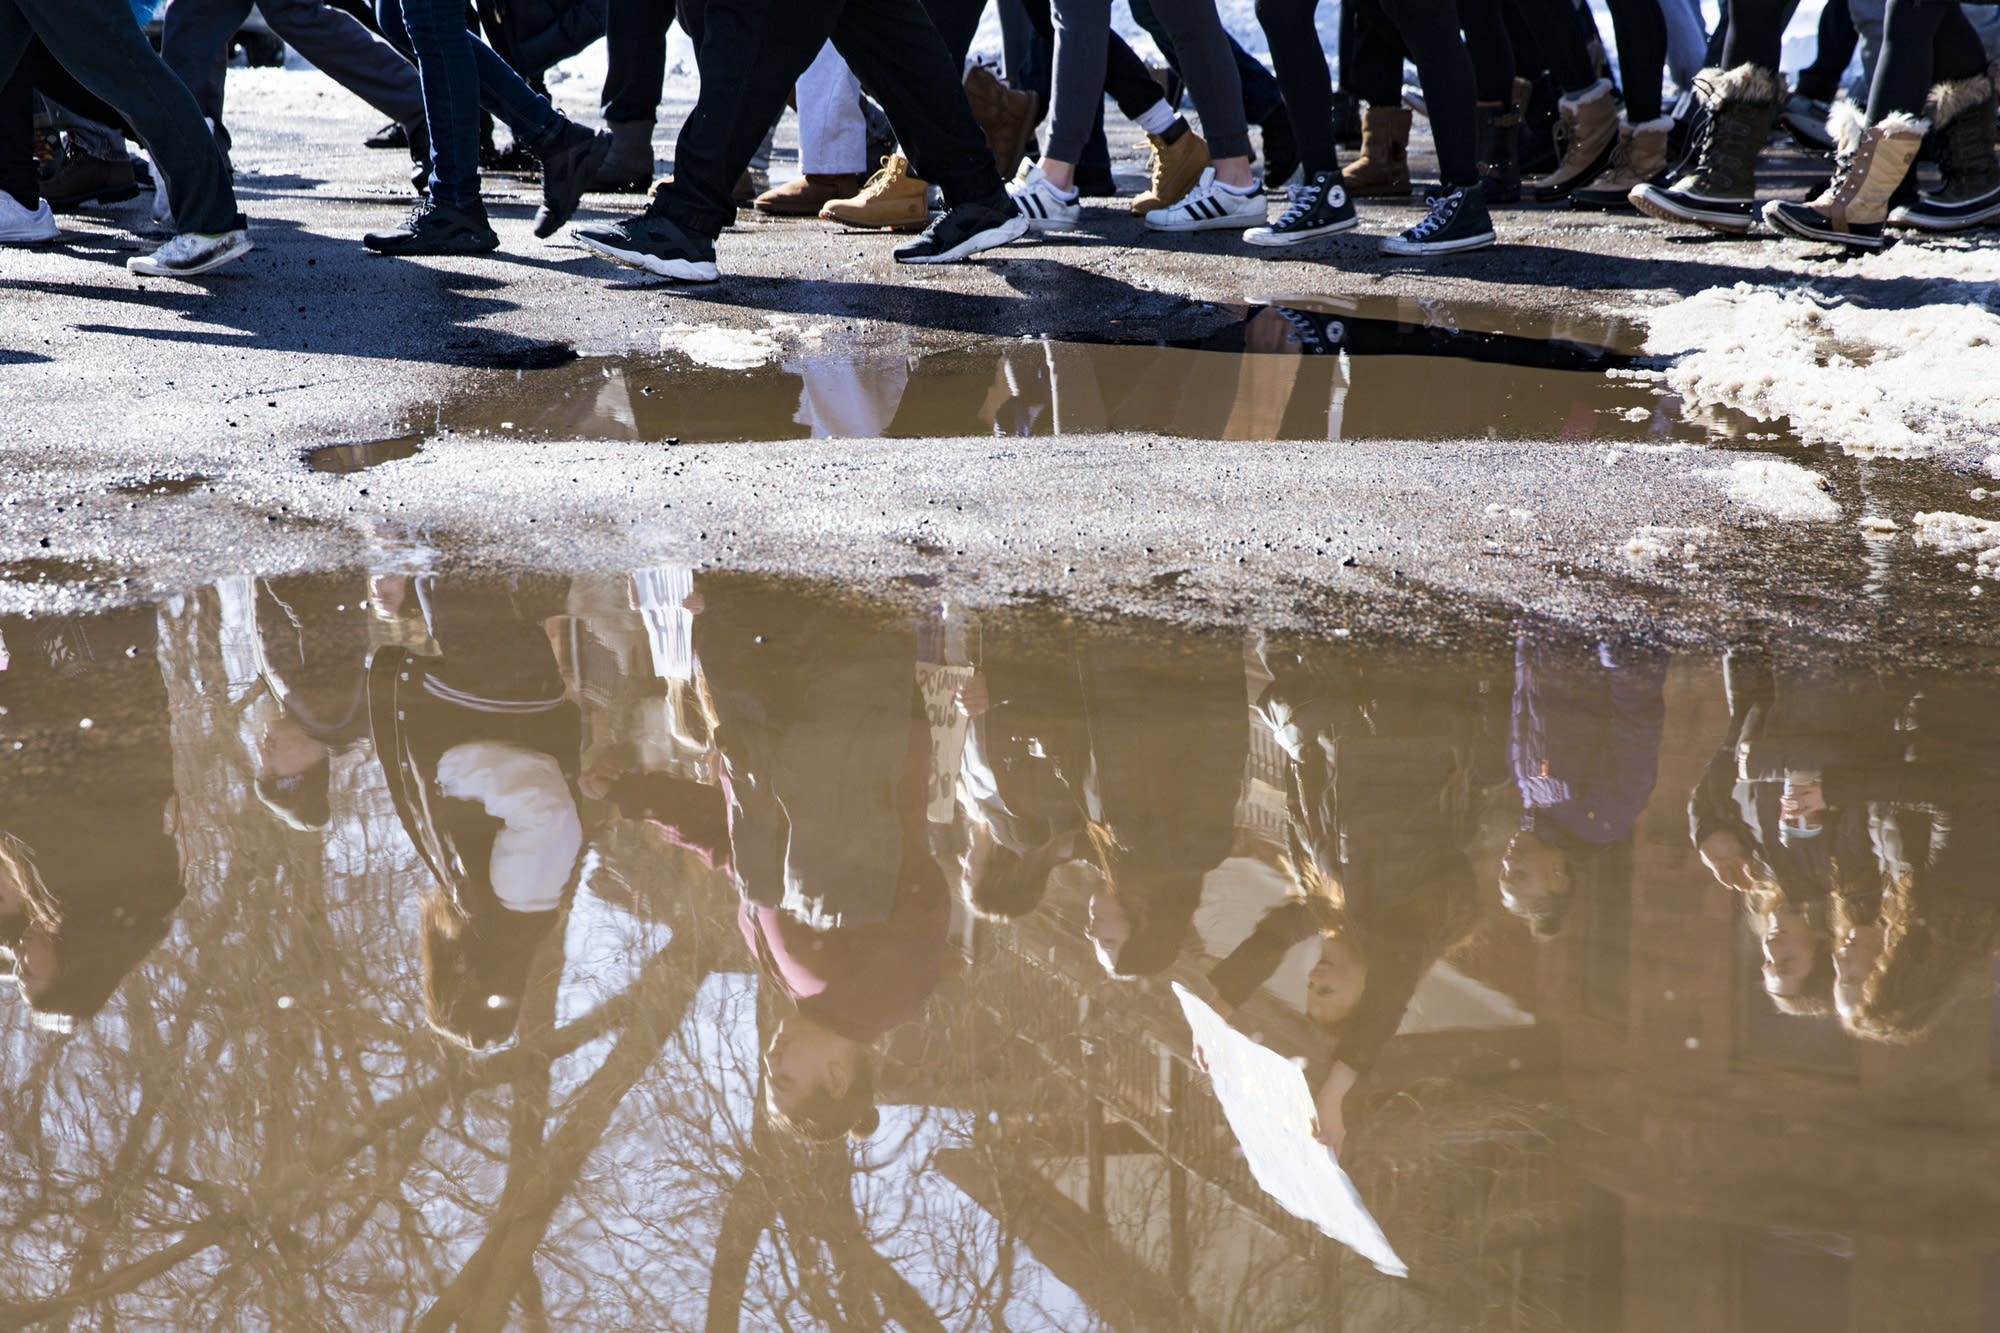 Marching students are reflected in a puddle